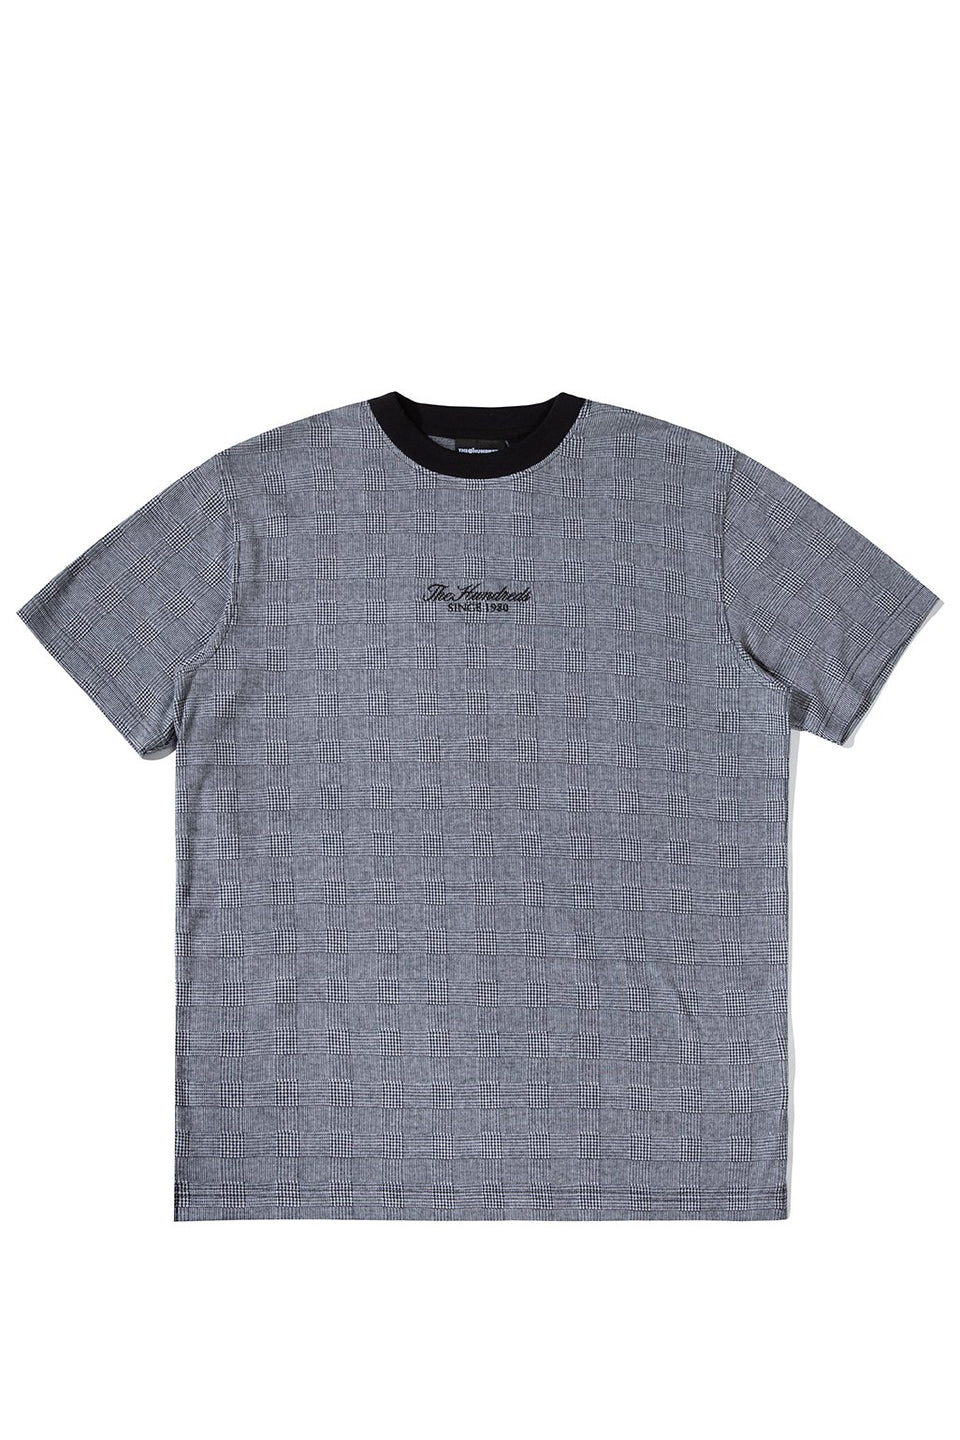 Houndstooth T-Shirt